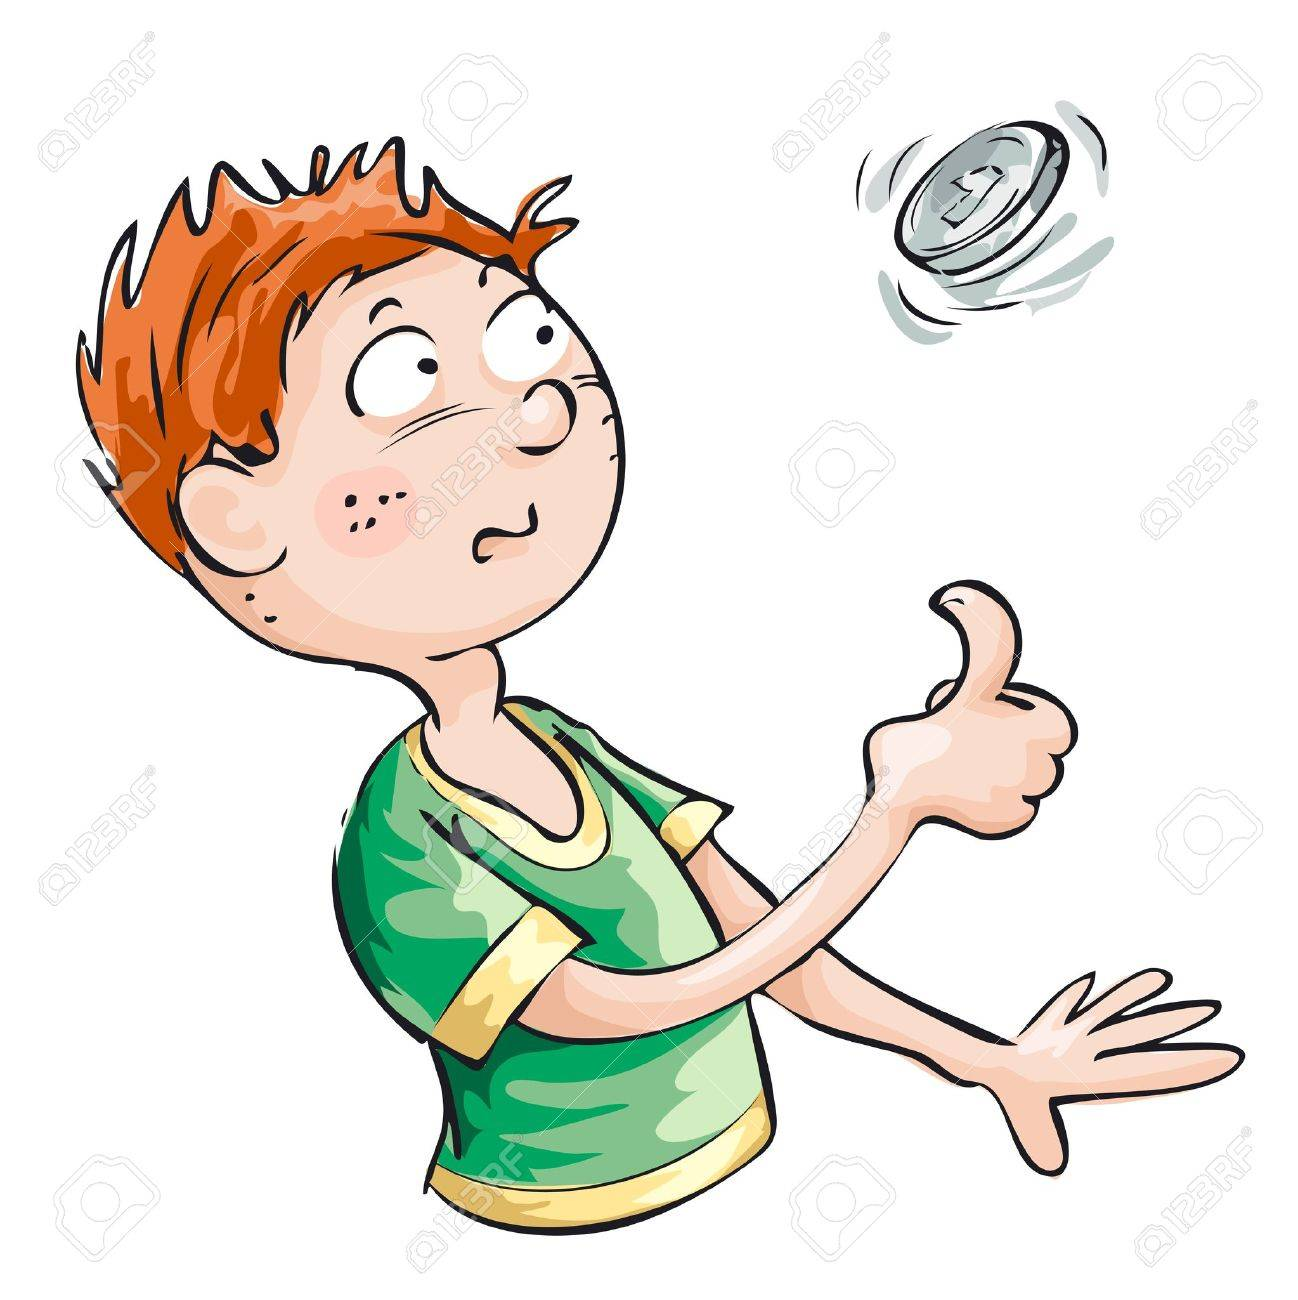 A young man wants to take a decision and throws a coin. Stock Vector - 11342205